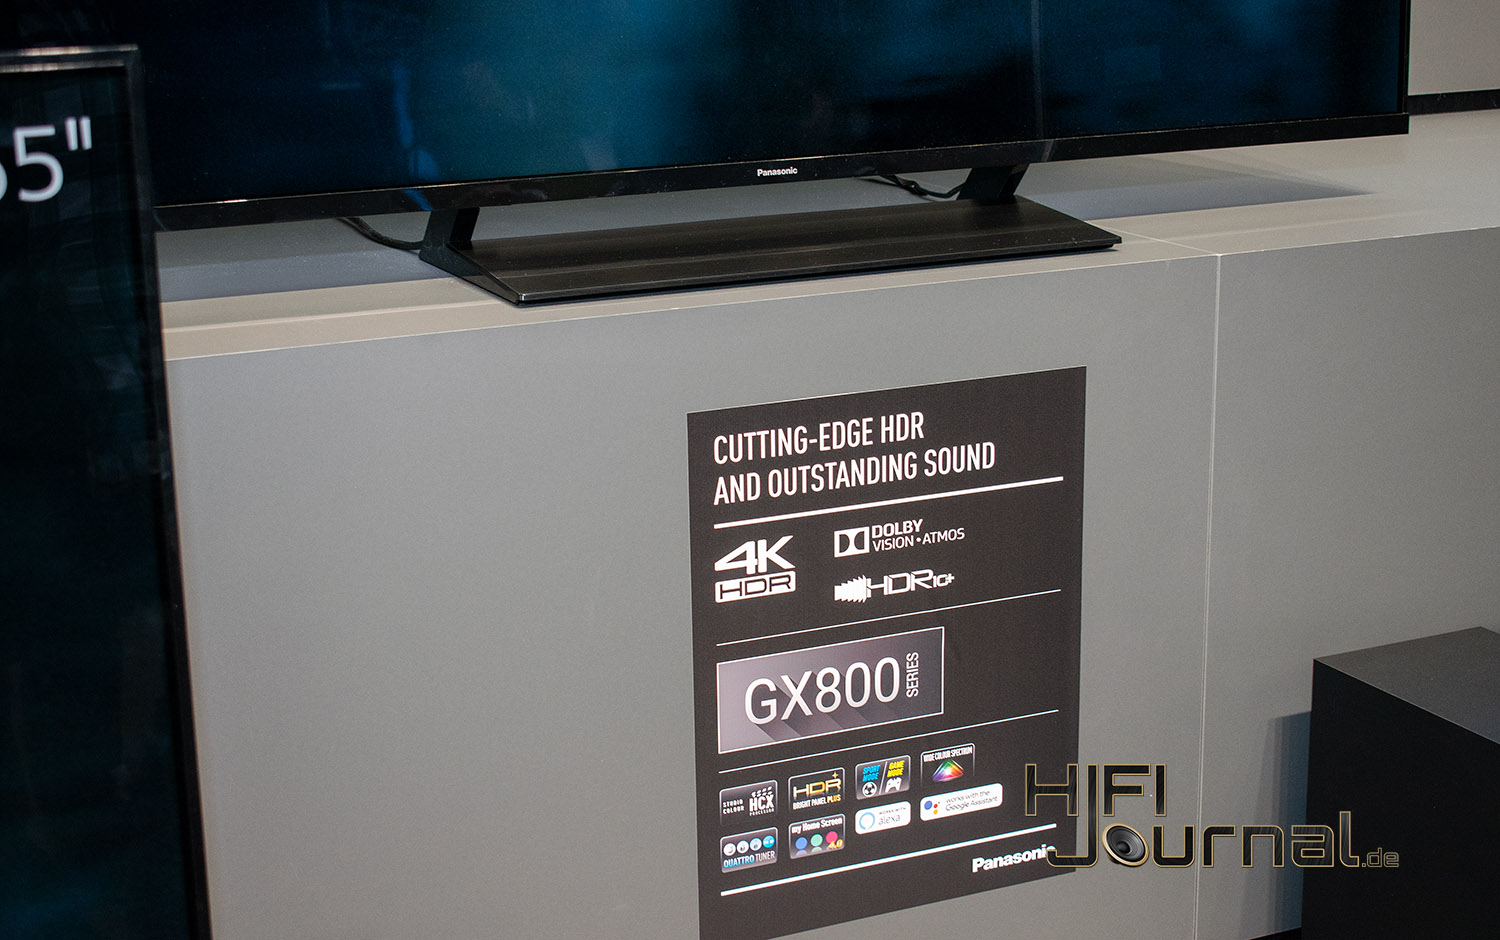 Panasonic LCD GXW804 Series 02